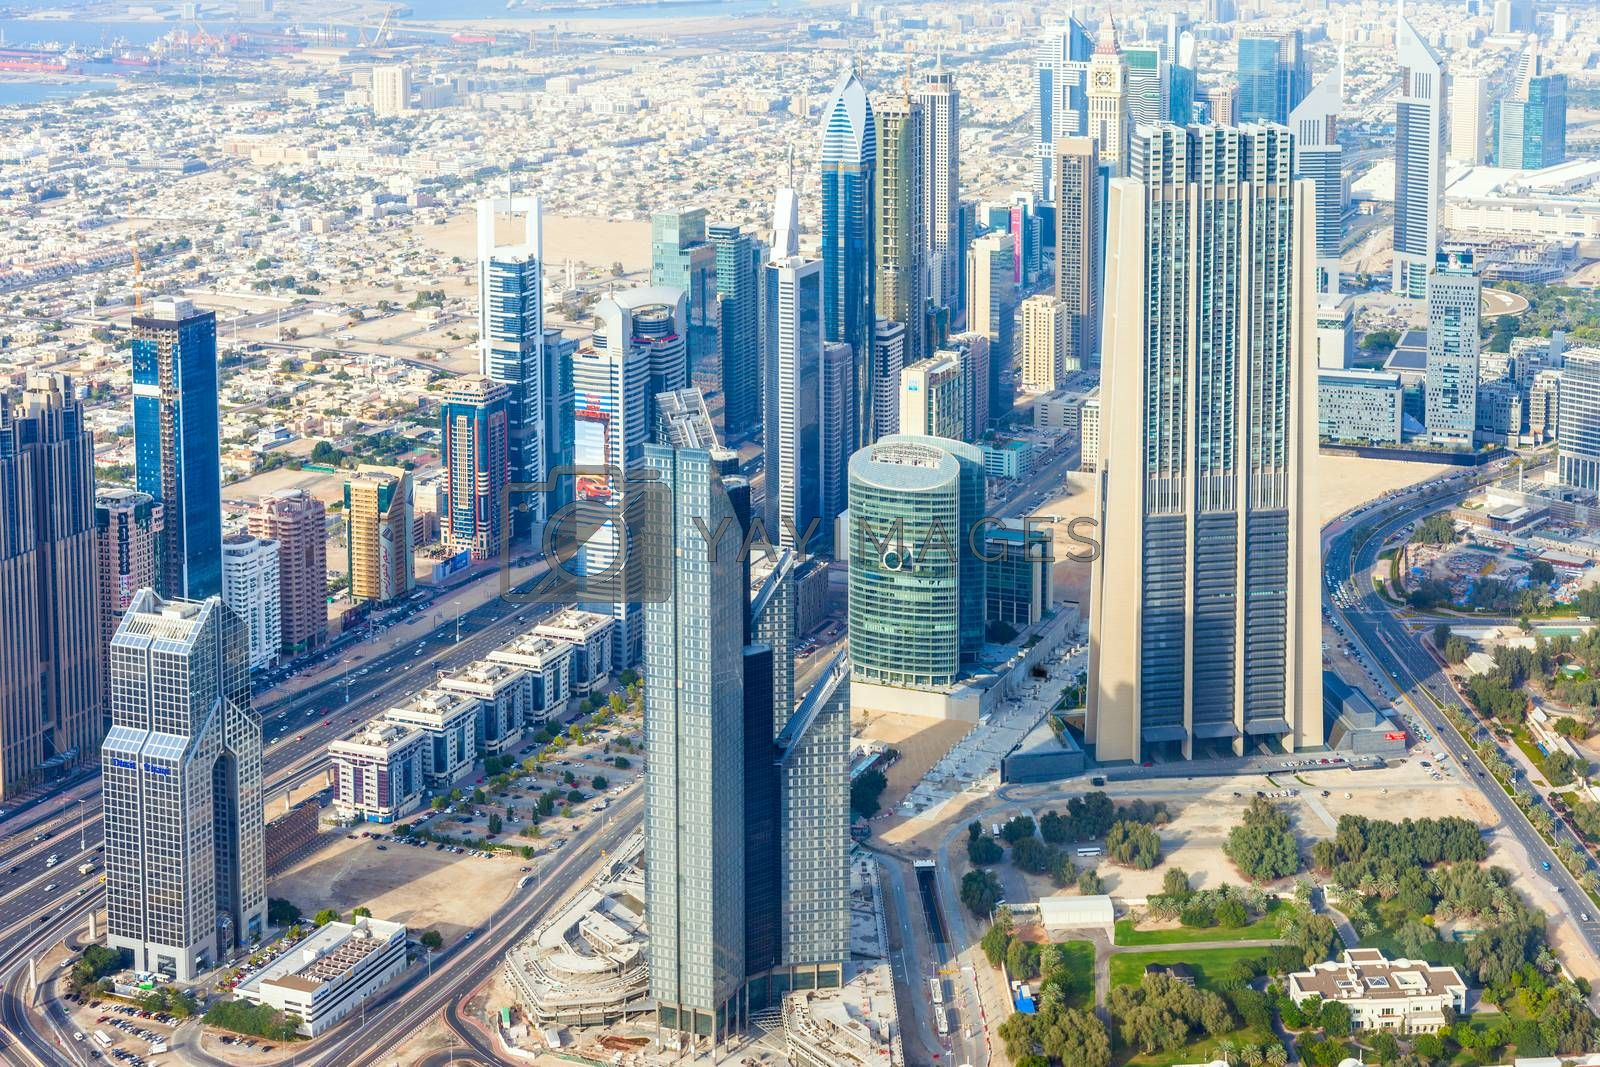 The Buildings In The Emirate Of Dubai